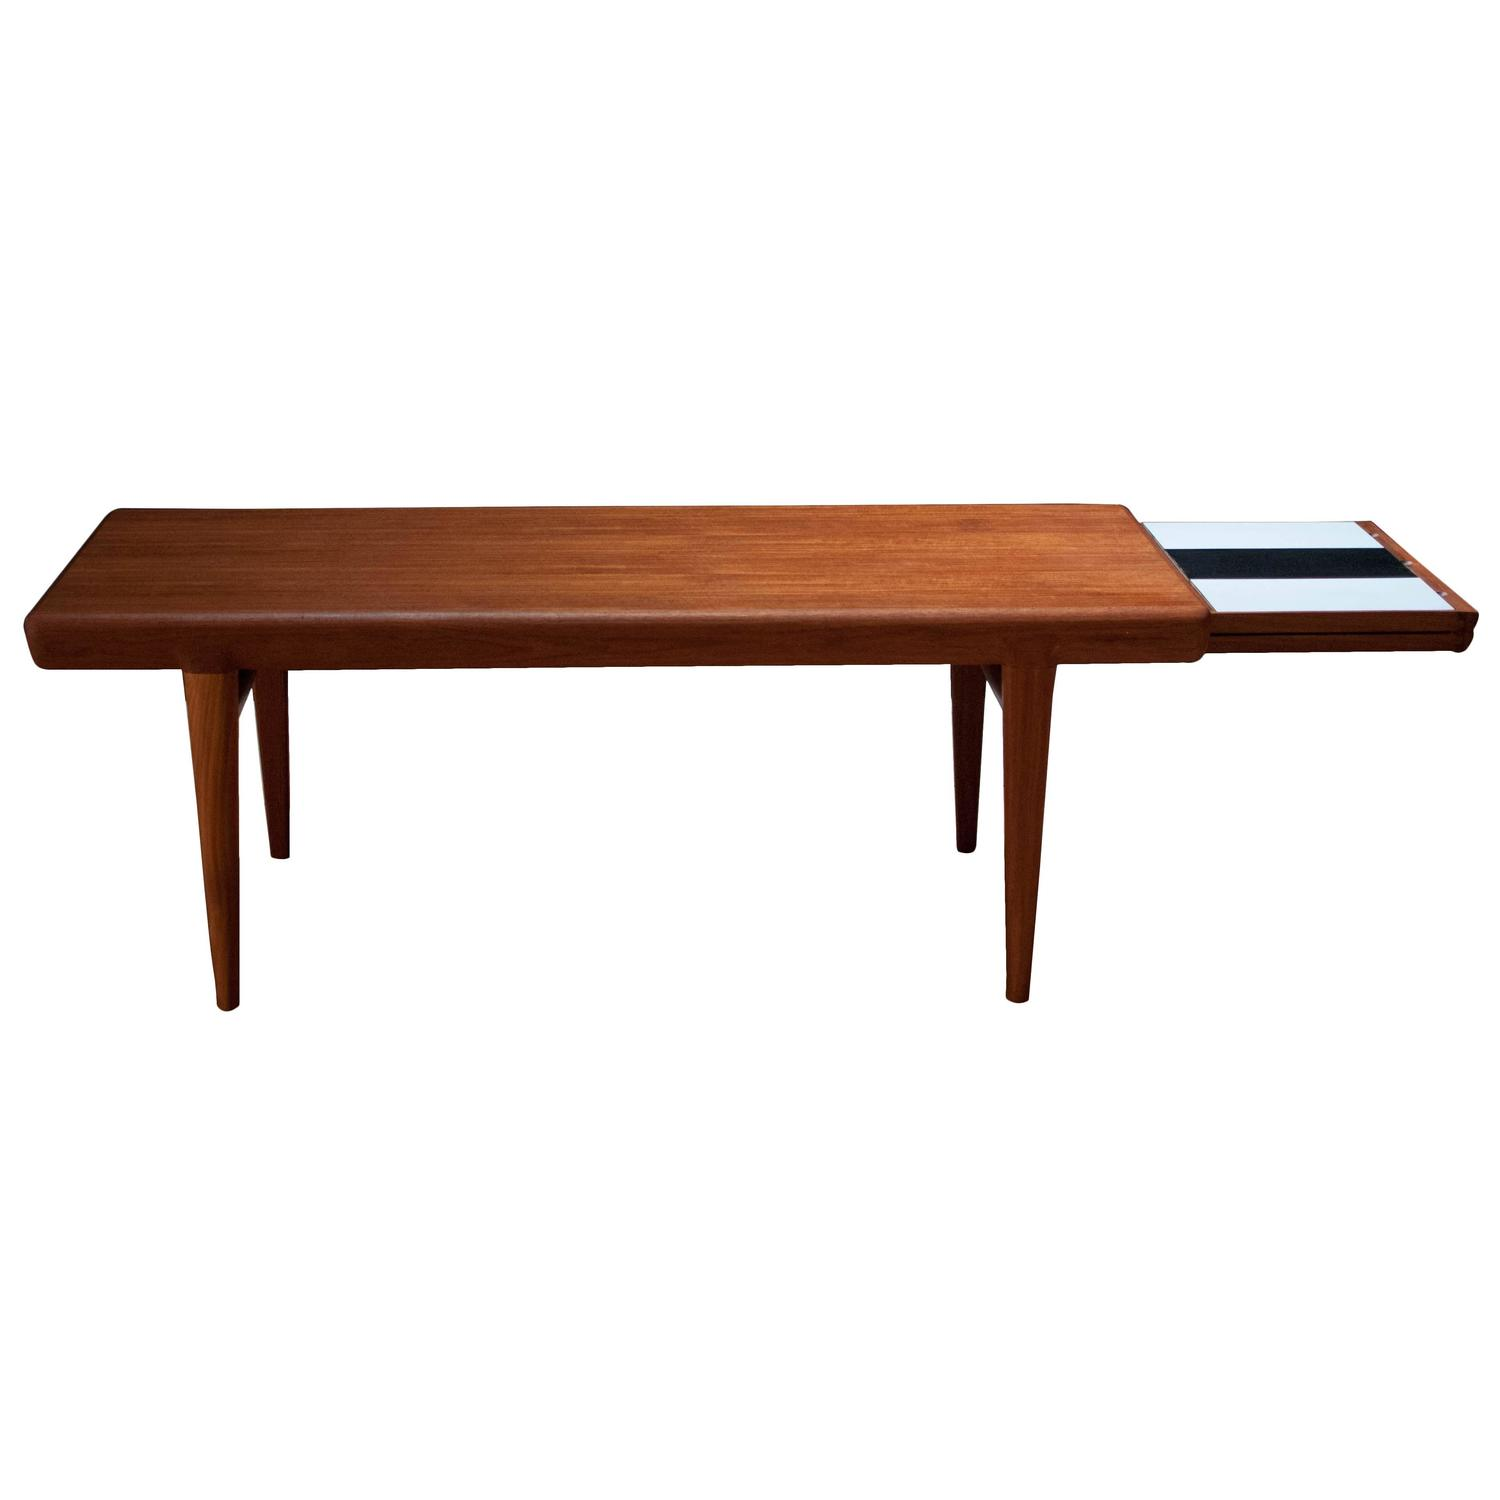 Johannes Andersen Teak Coffee Table At 1stdibs